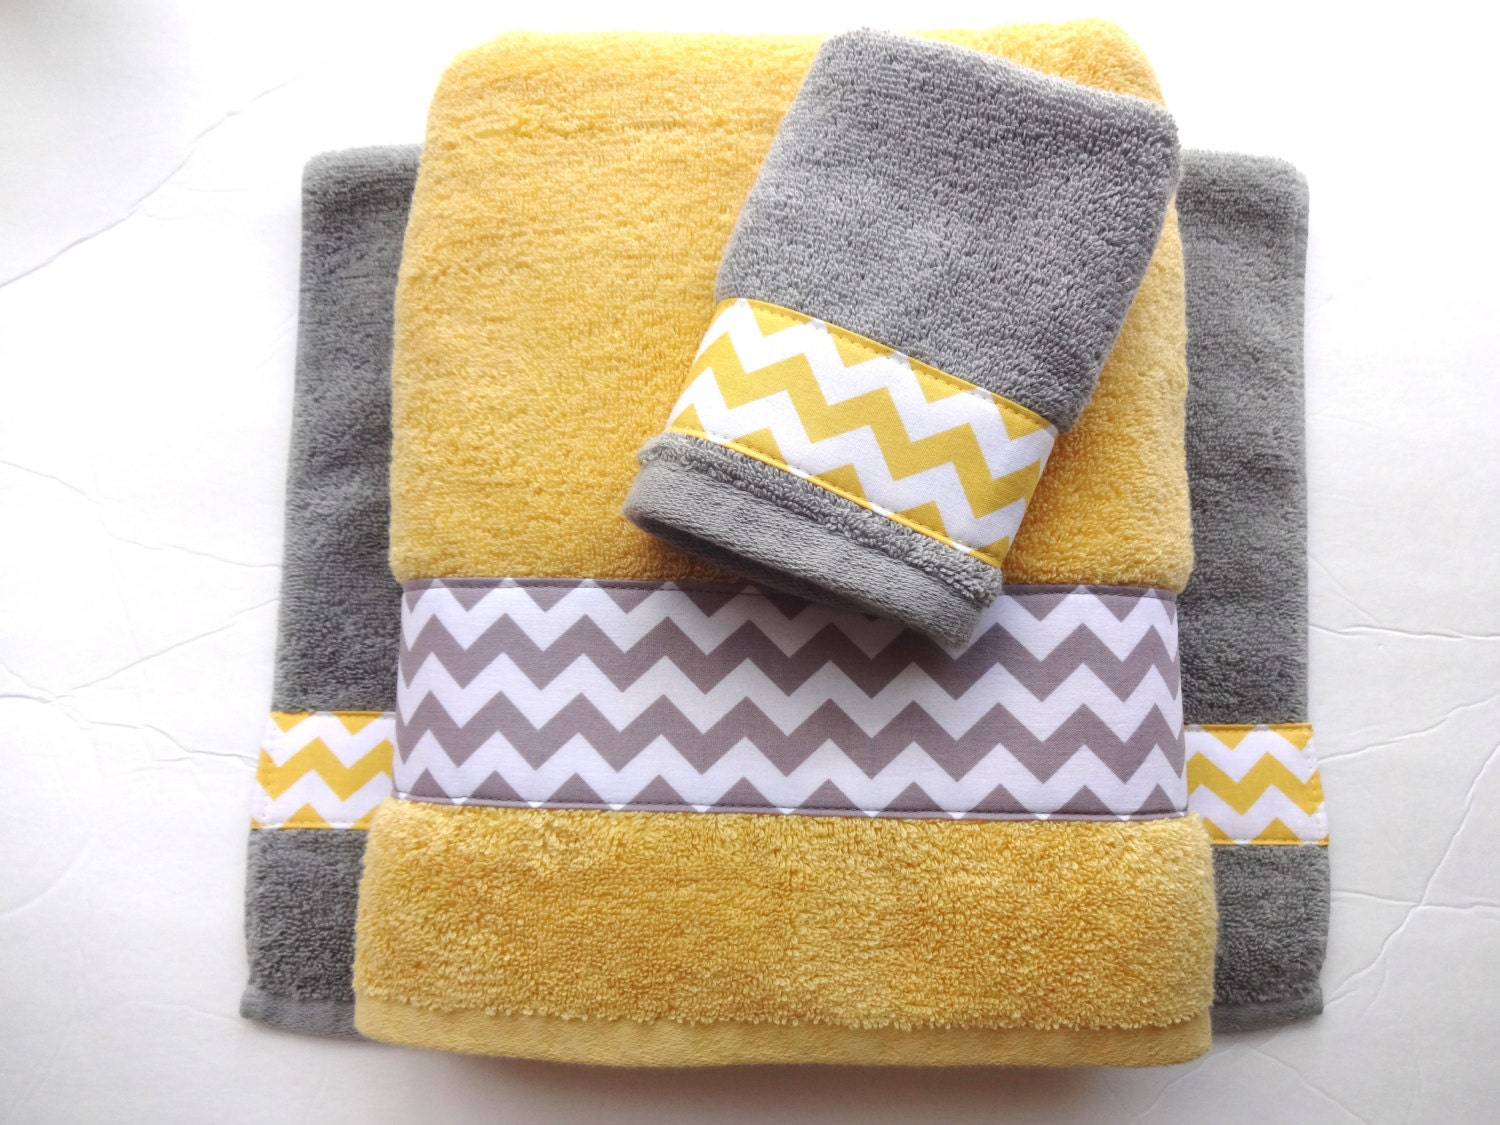 Pick your size towel yellow and grey towels gray and yellow for Bathroom decor yellow and gray